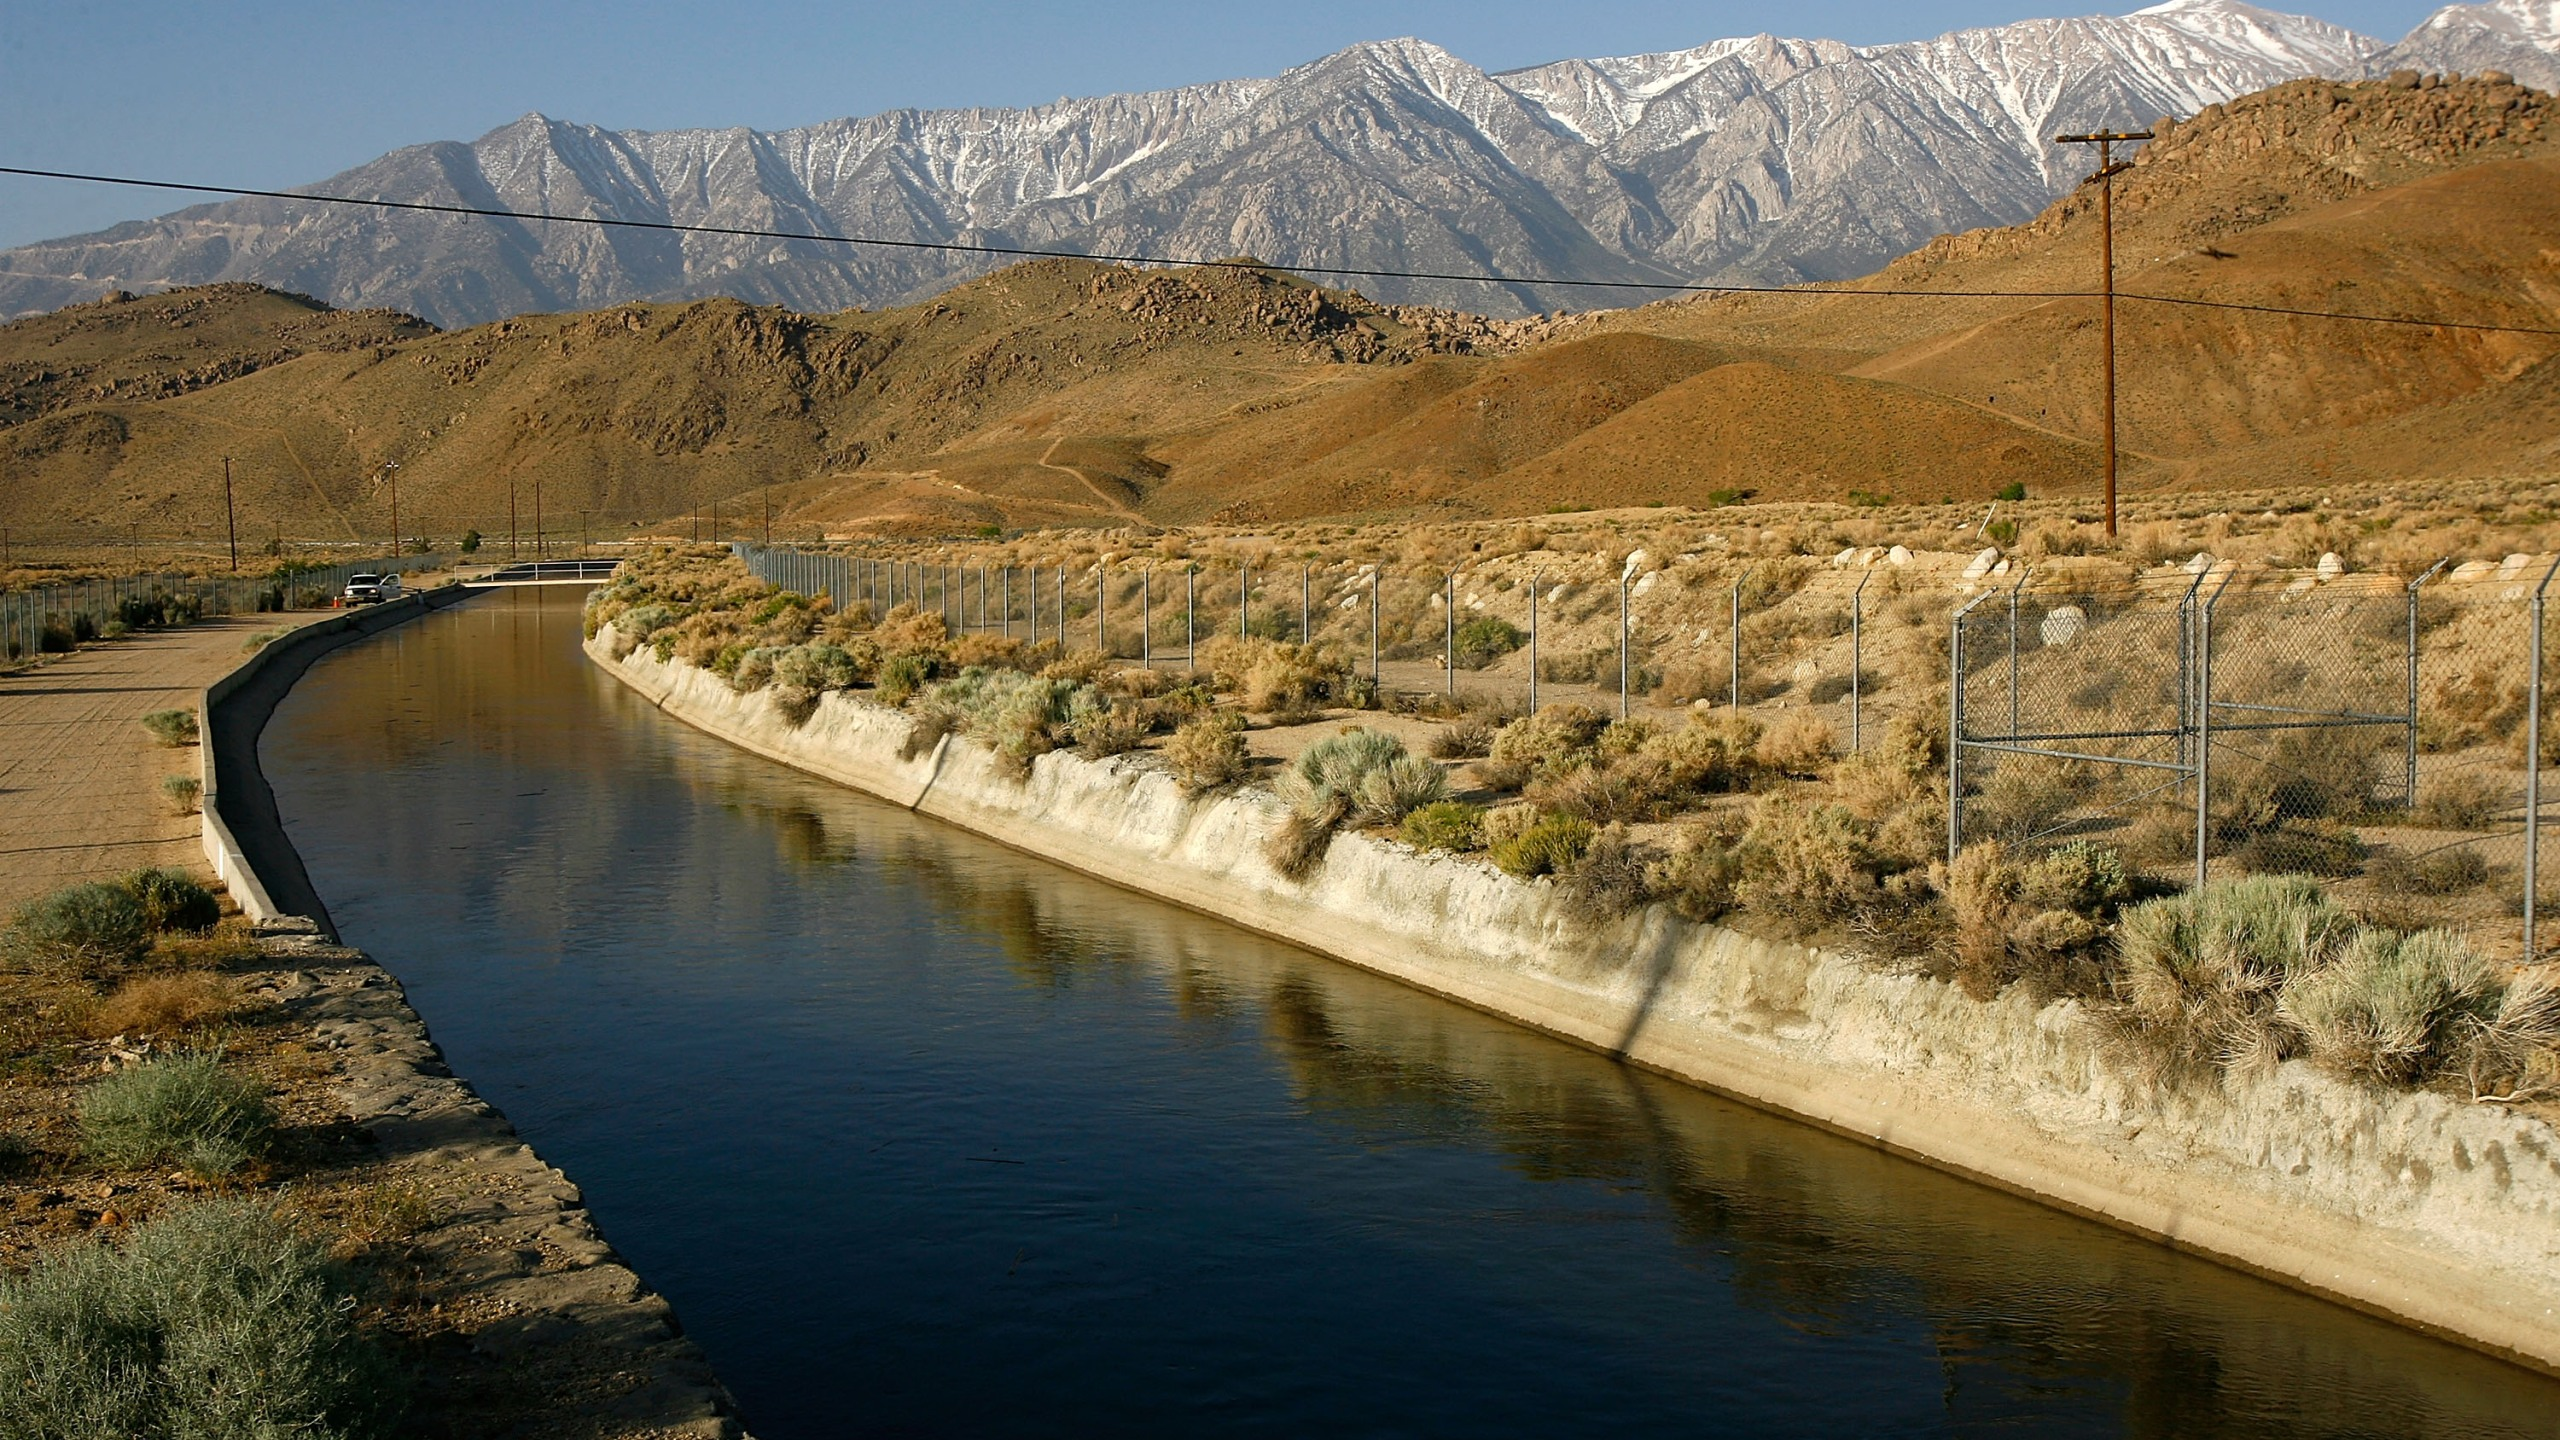 The Los Angeles Aqueduct carries water from the snowcapped Sierra Nevada Mountains to major urban areas of Southern California on May 9, 2008, near Lone Pine. (David McNew / Getty Images)